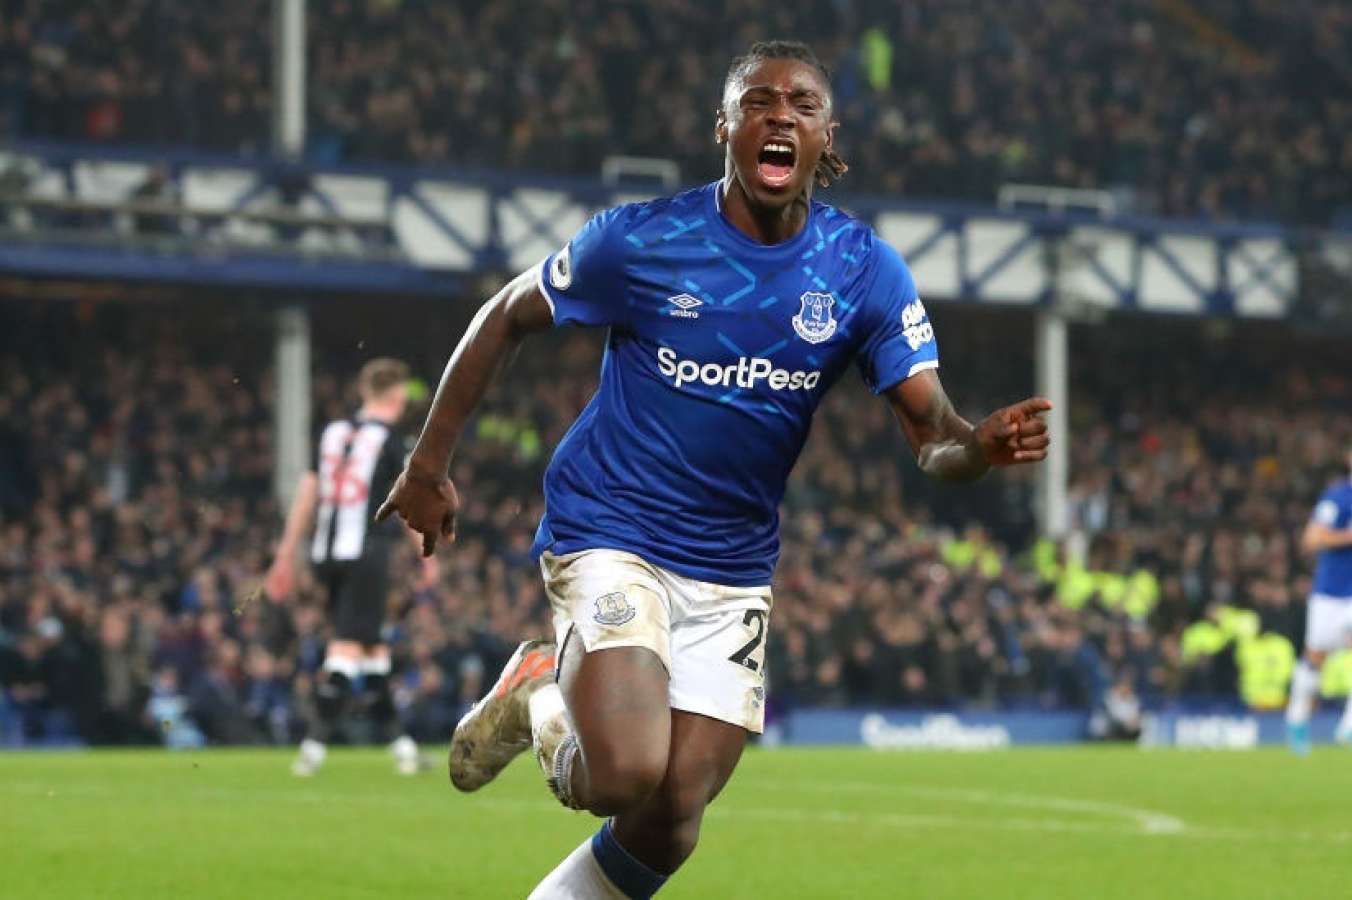 Everton Player Causes Outrage After Hosting Lockdown Party Odds